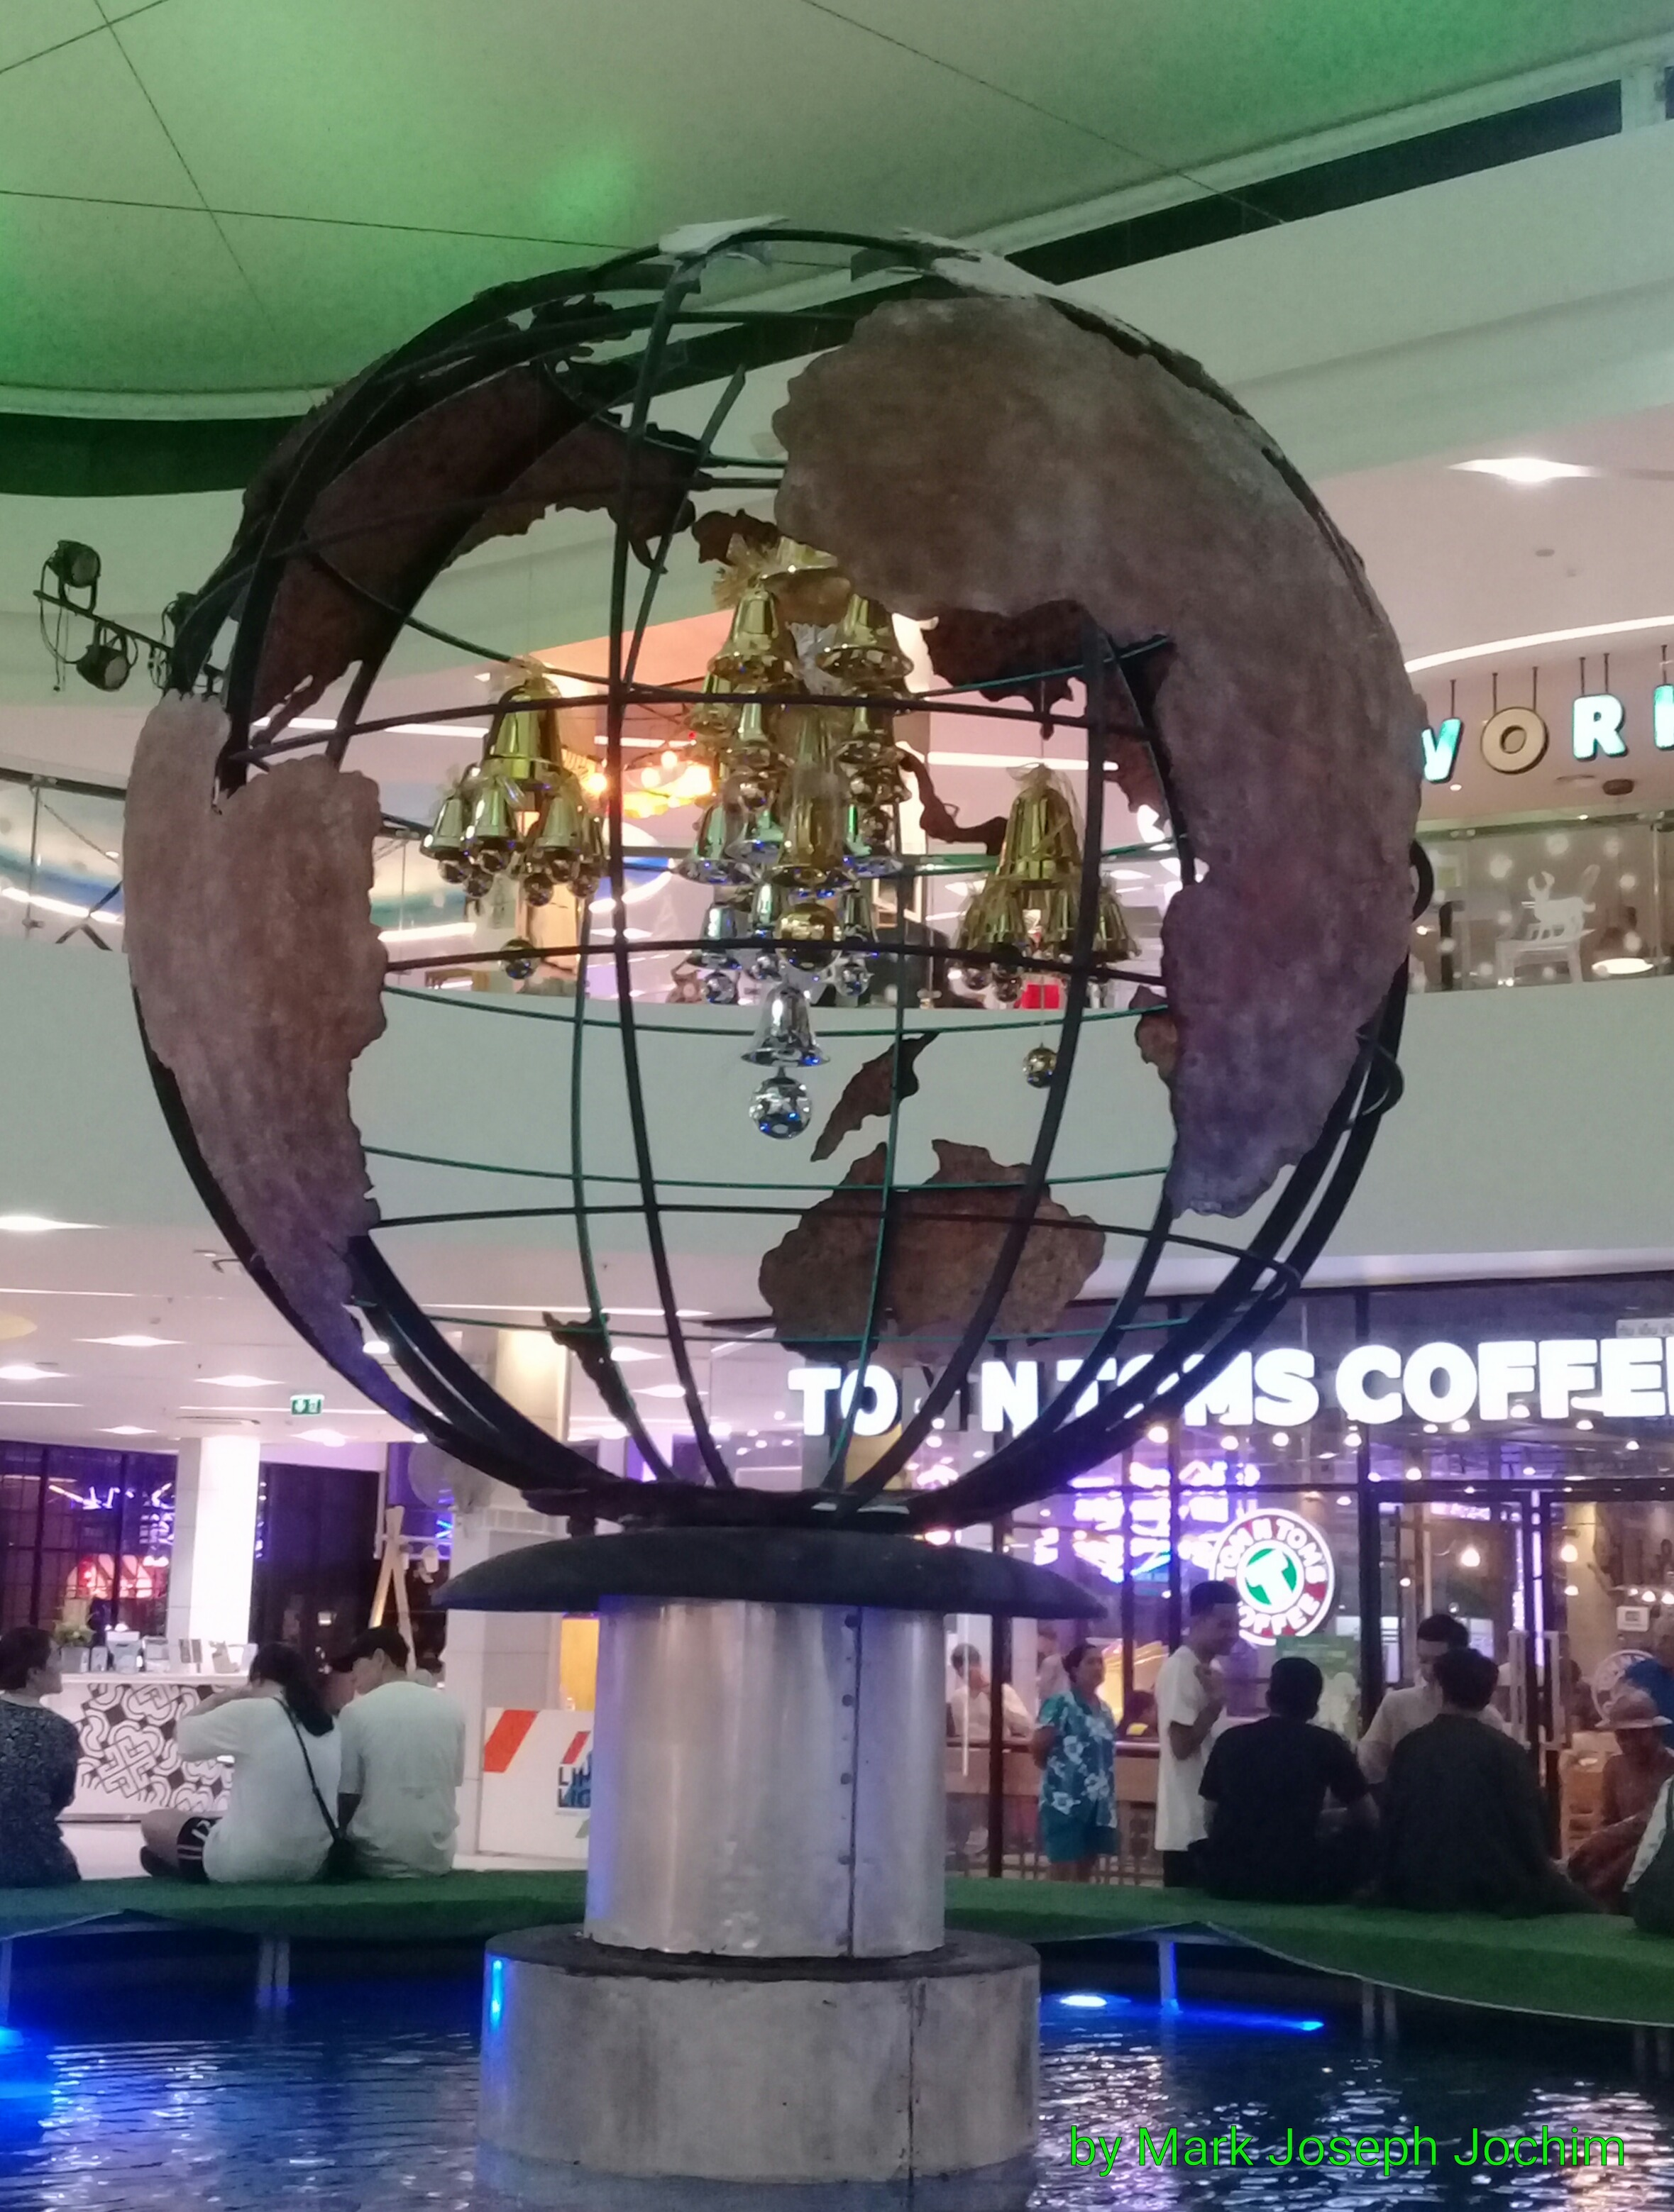 The world comes to Phuket -- globe and fountain inside of the Limelight Avenue shopping center, Phuket Town, Thailand. Photo taken on January 20, 2019.